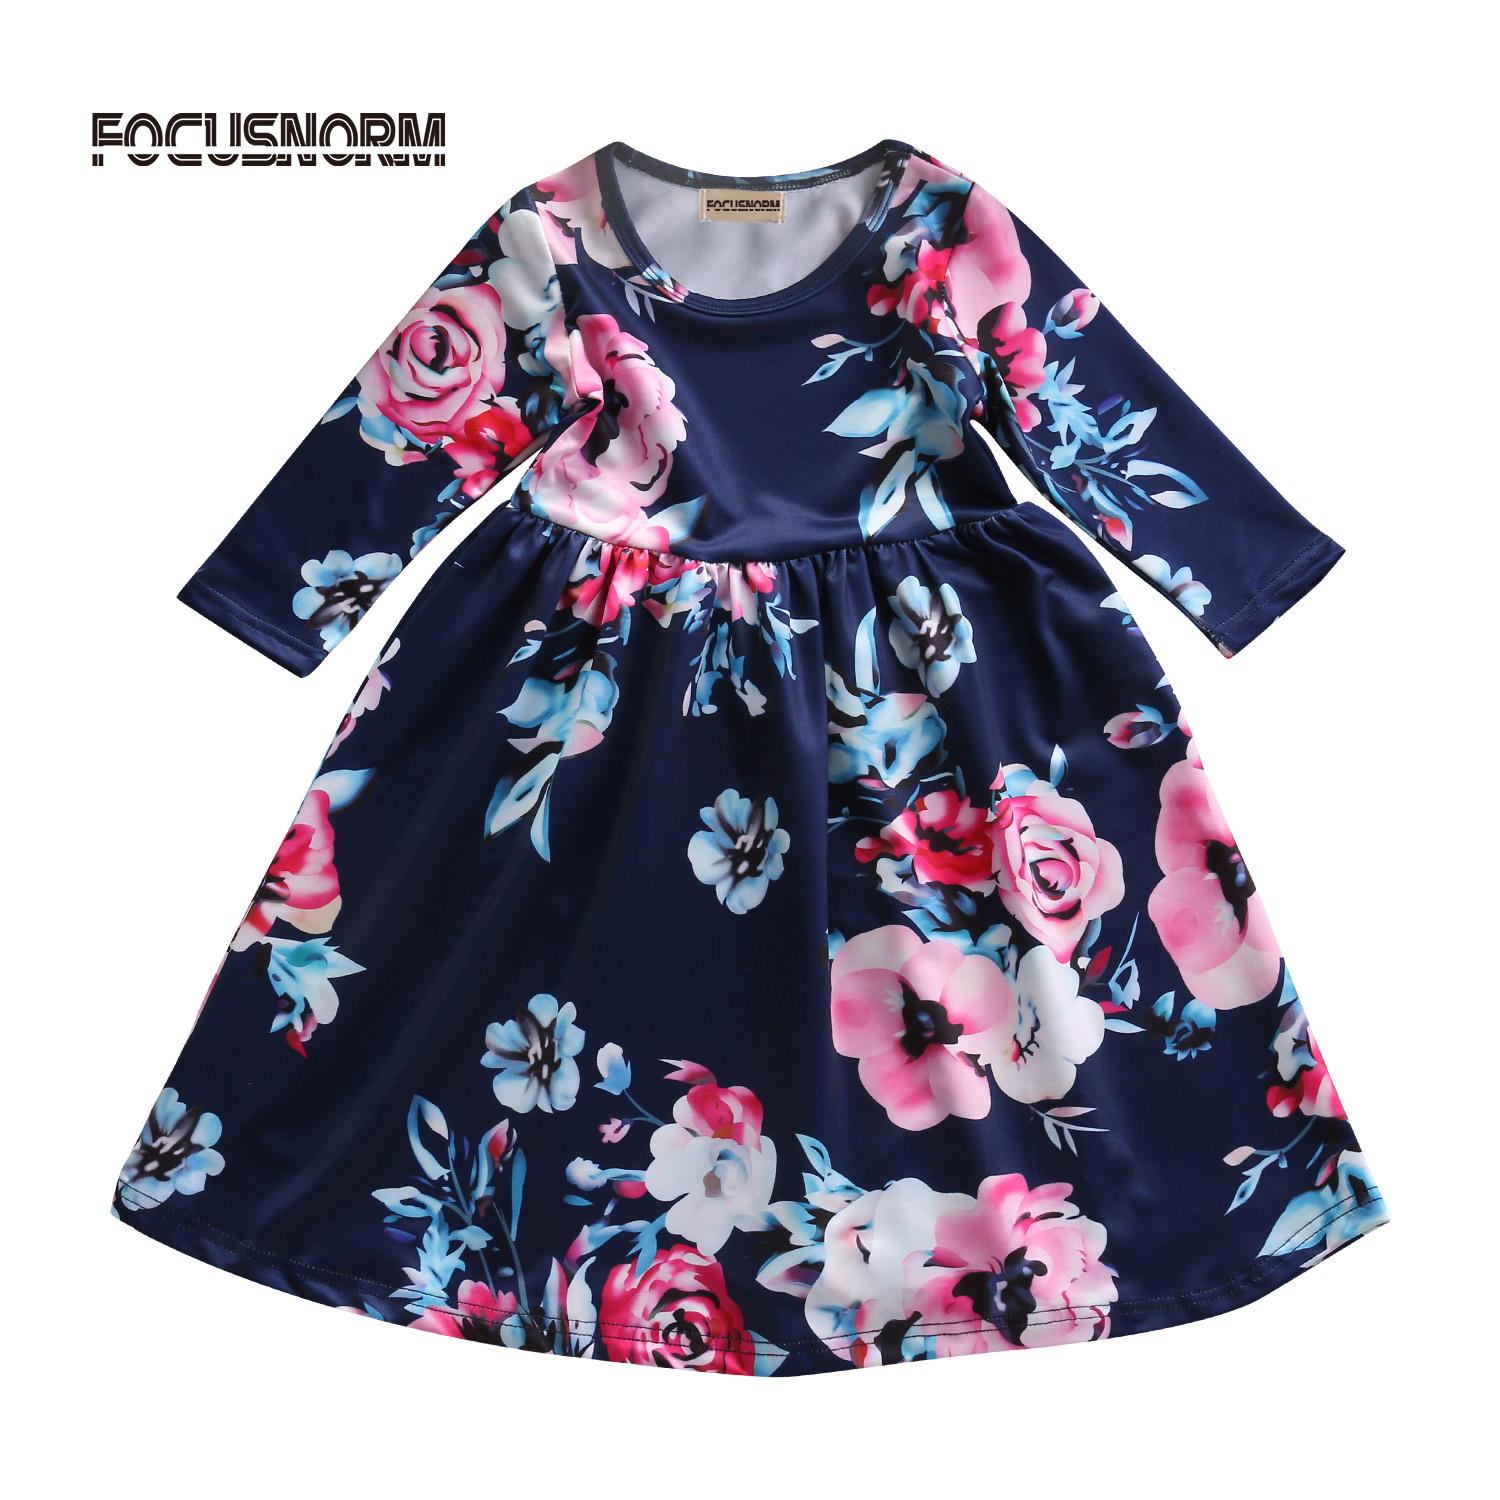 Flower Toddler Kids Princess Dress Kids Baby Girls Long Sleeves Party Pageant Floral Cotton Dress Clothes baby girls printed long sleeves dress girls party princess dress baby kids girls cute loose dress girls clothing 3 7ys